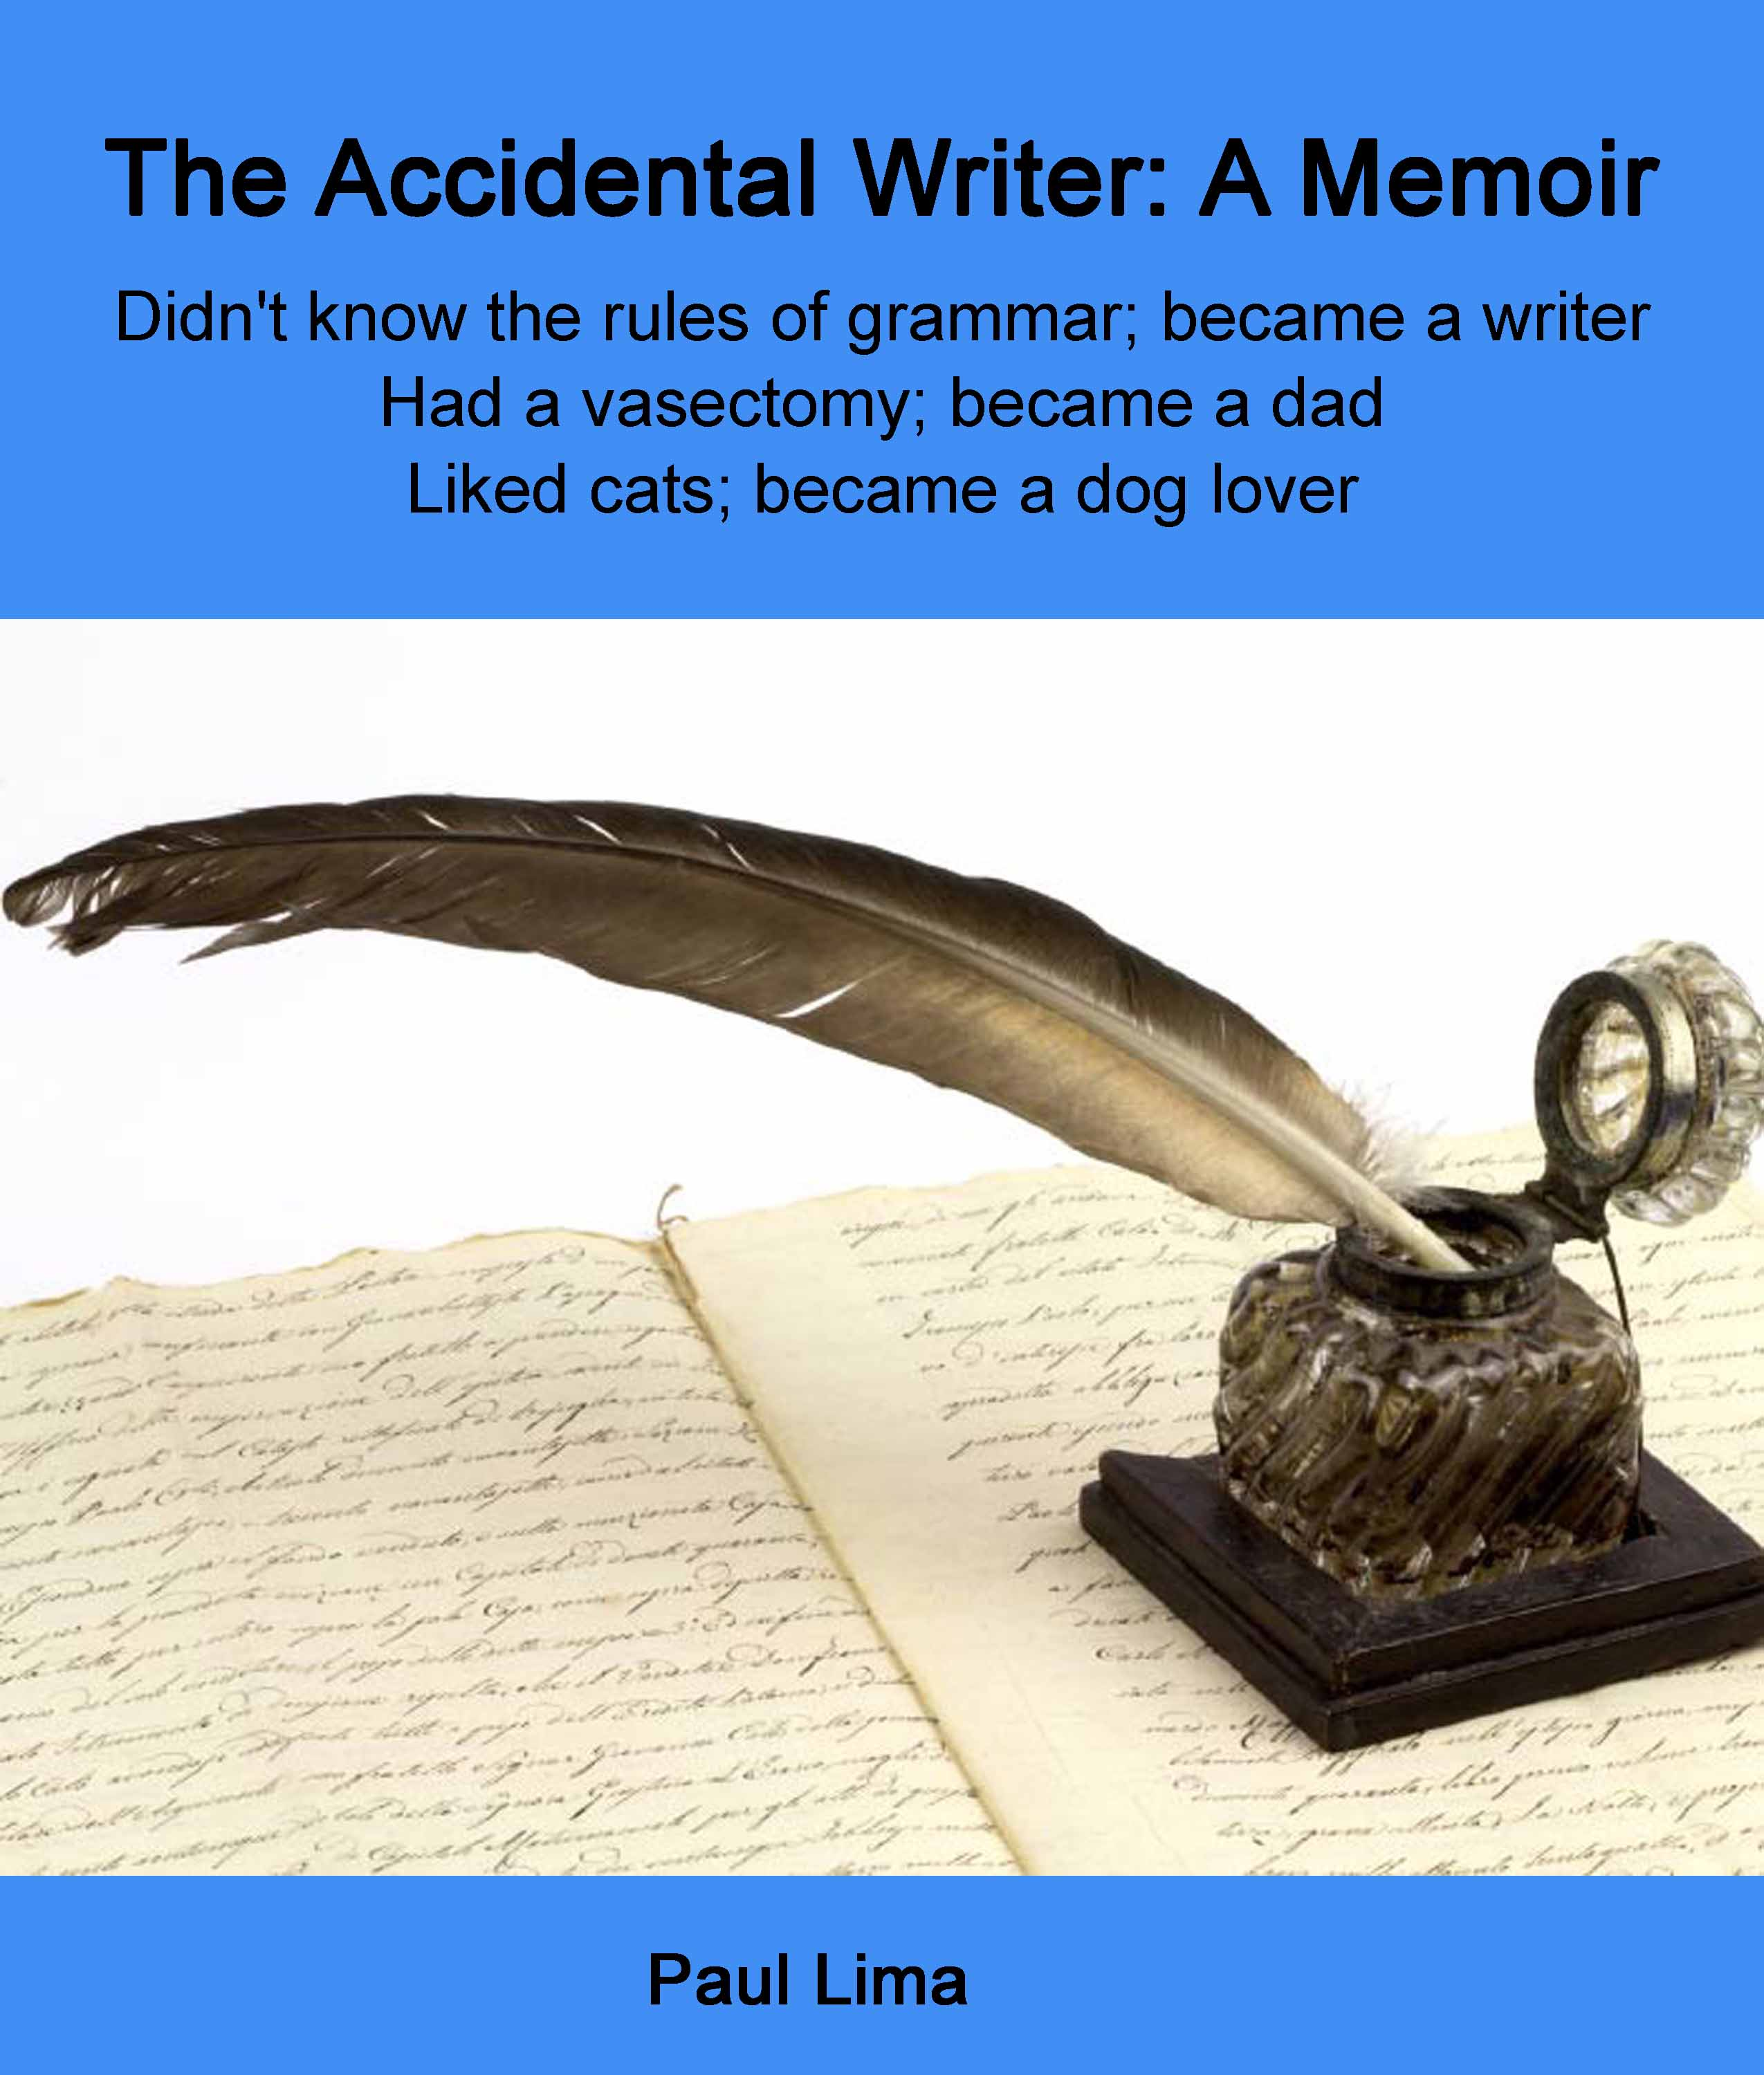 The Accidental Writer